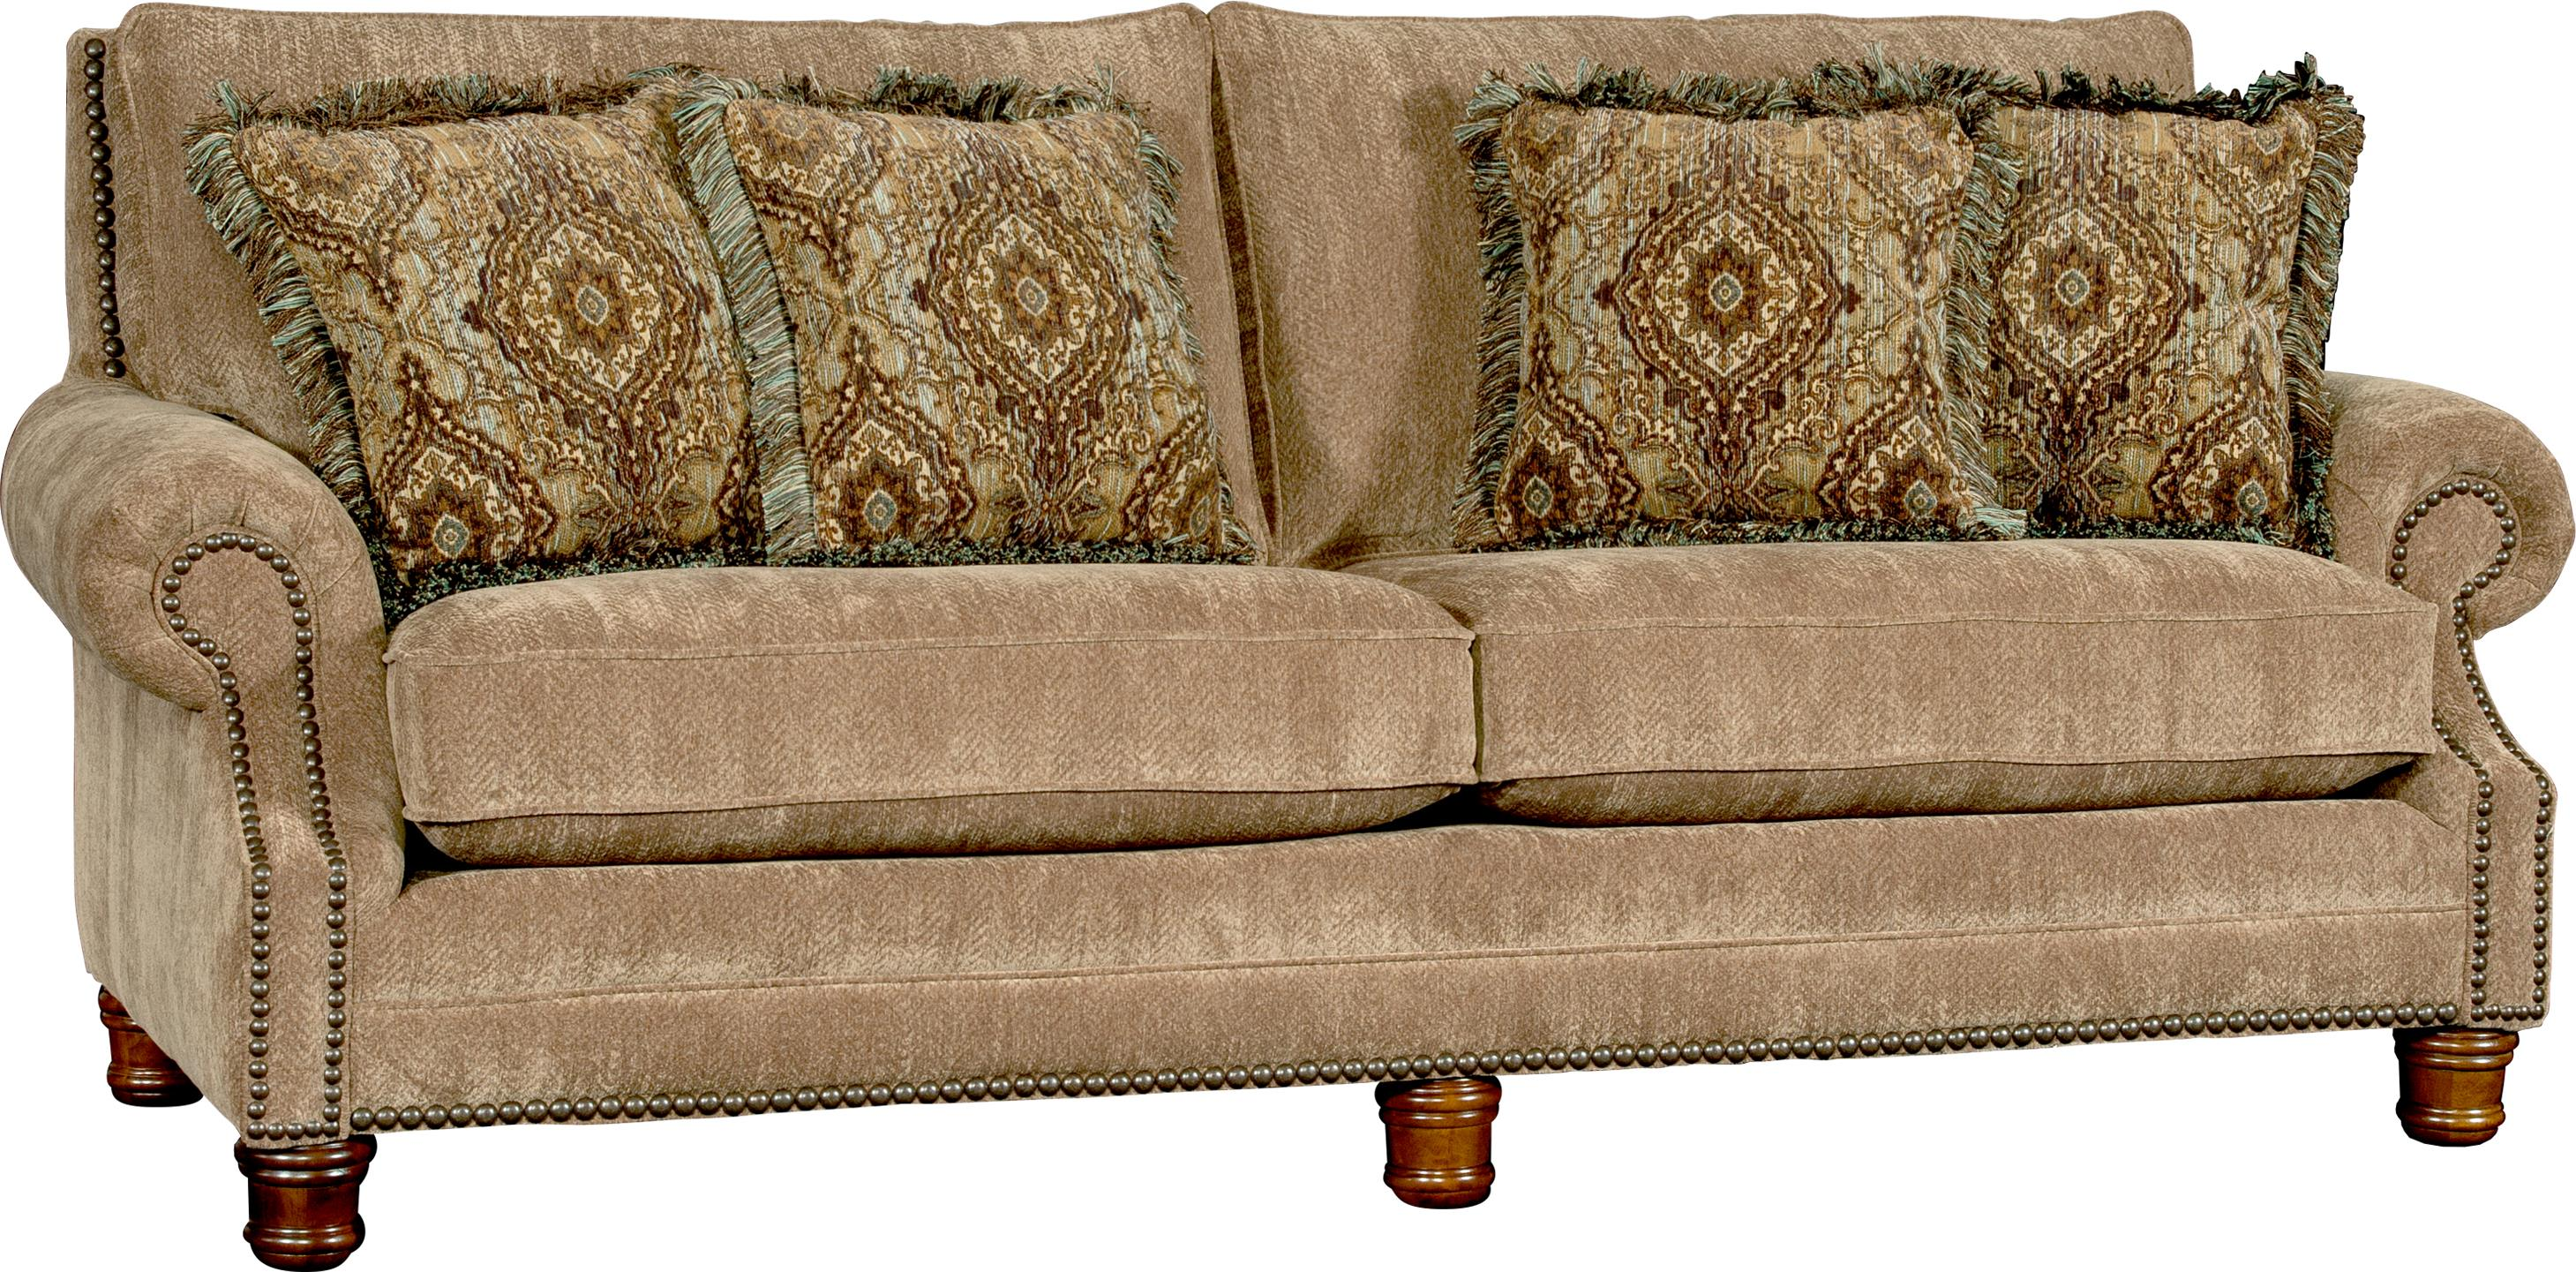 5790 Traditional Sofa by Mayo at Pedigo Furniture